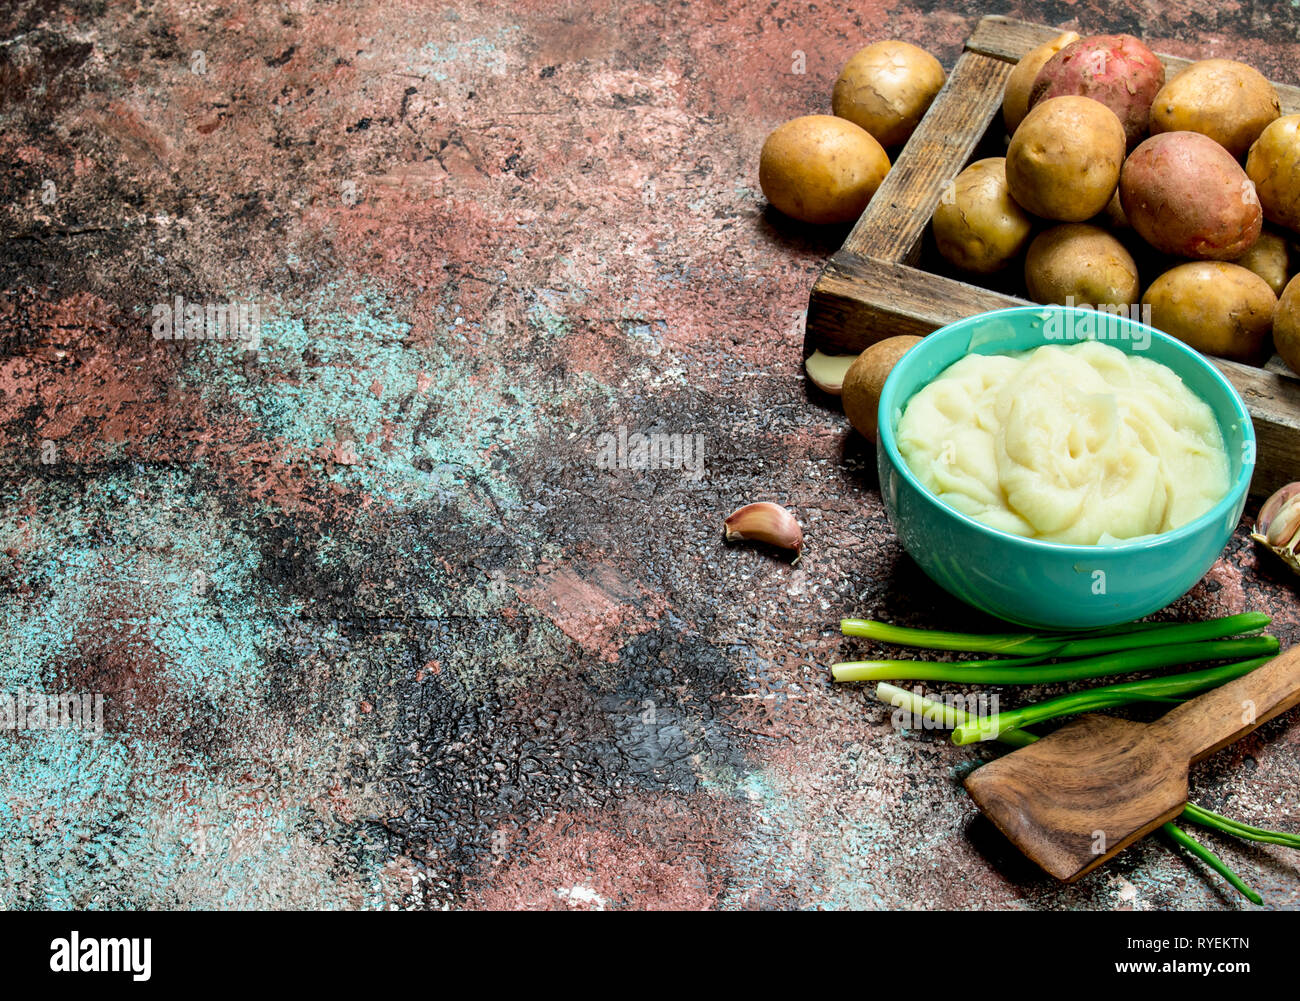 Mashed potatoes in a bowl with green onions . On a rustic background. - Stock Image